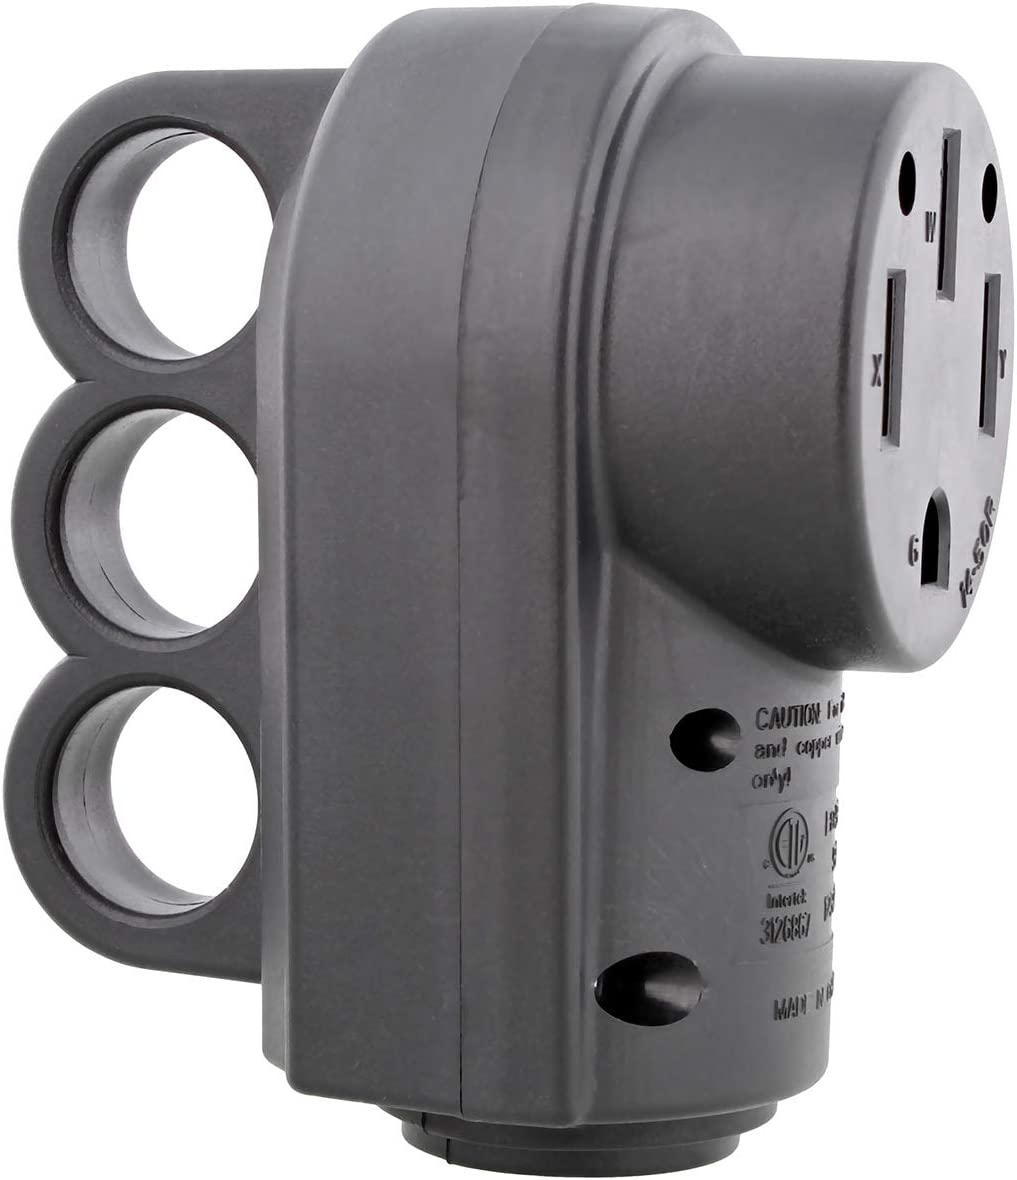 Dumble 50 Amp RV Plug Replacement RV Electrical Adaptors RV Plug Adapter RV Power Cord 50A 125//250V 4-Prong Female